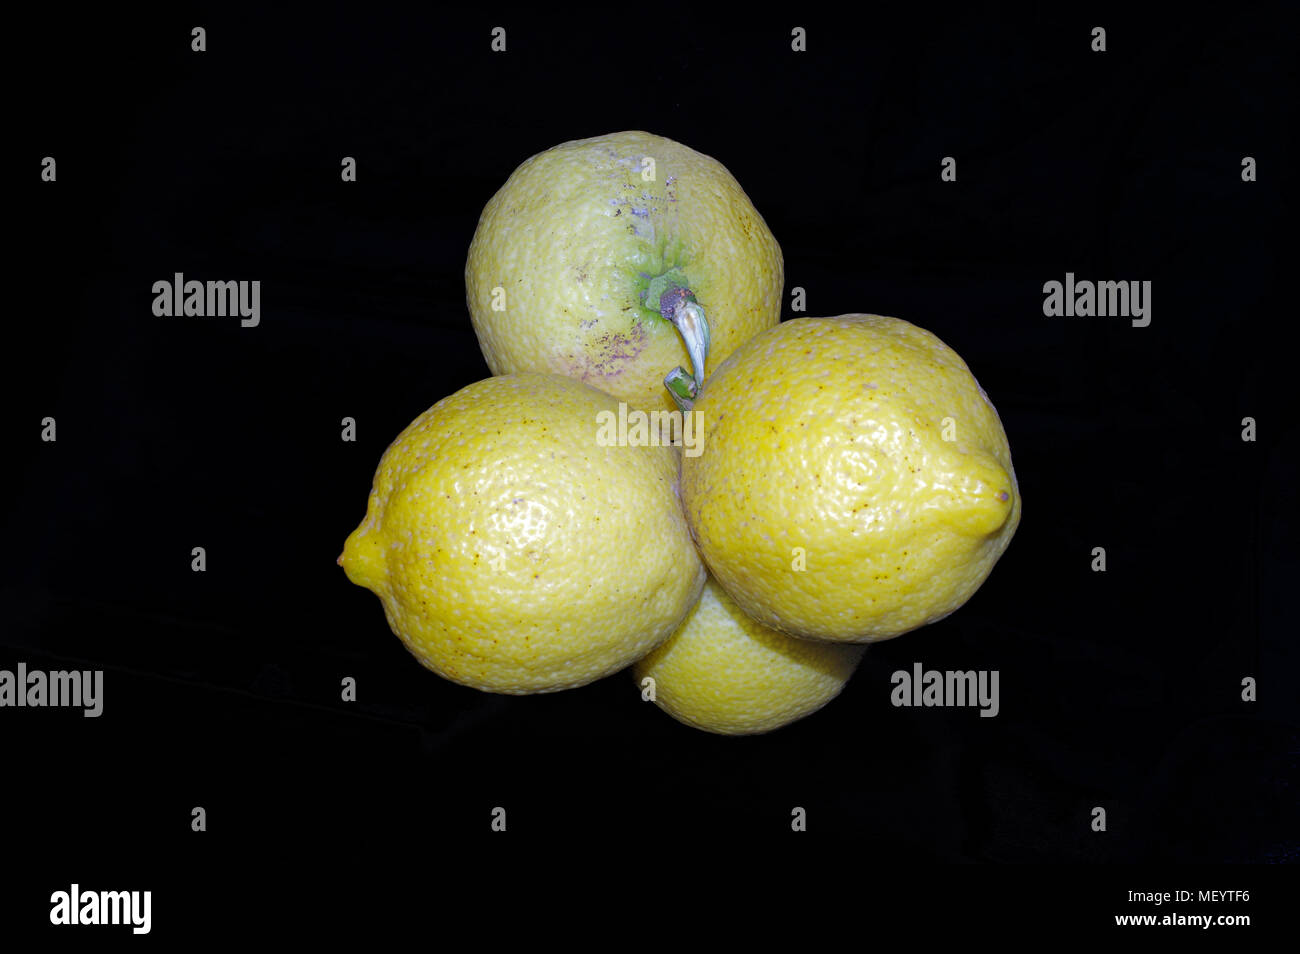 La grappe du citron Photo Stock